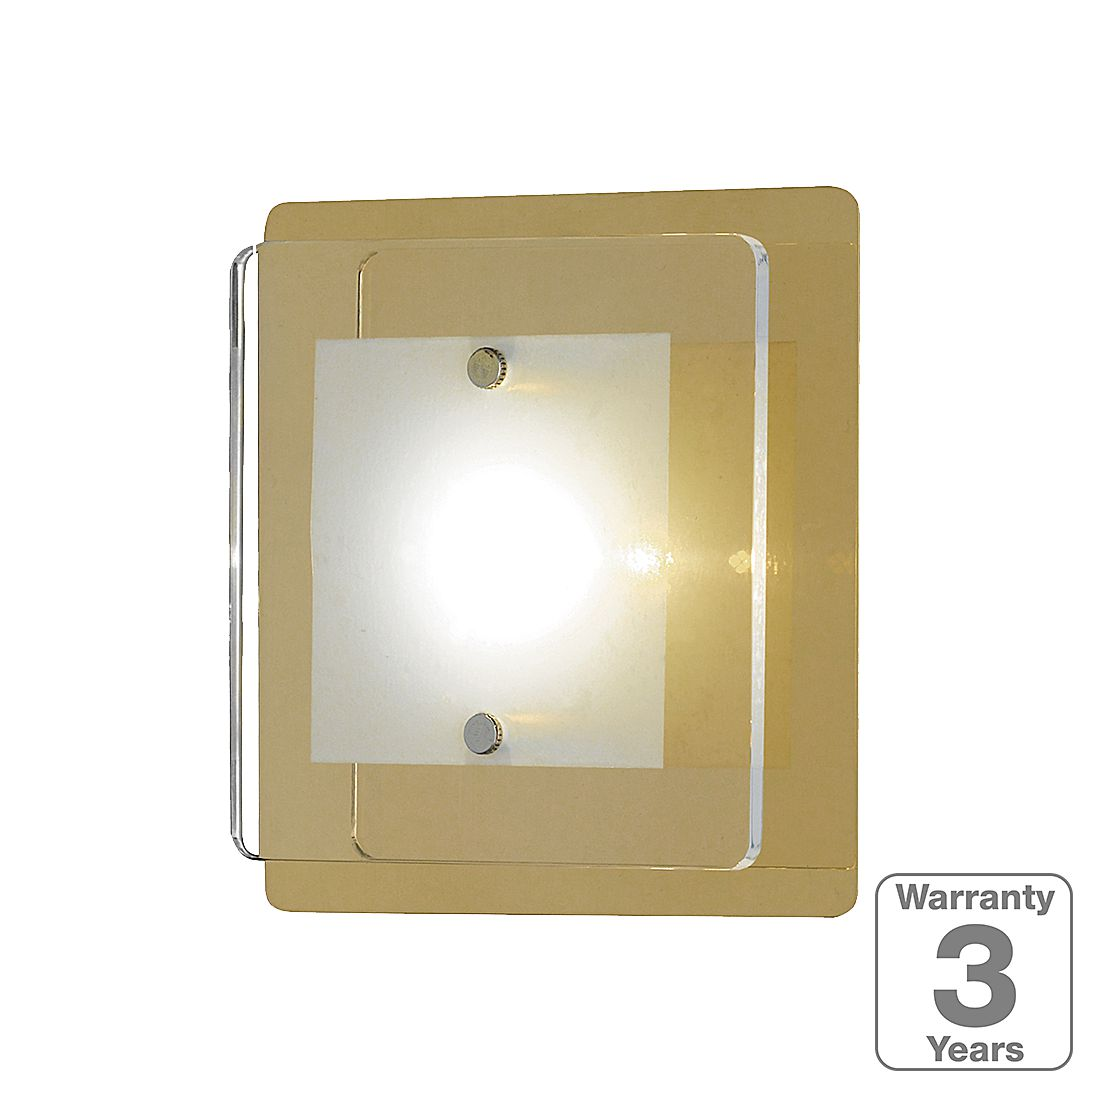 home24 LED-Wandleuchte Lene